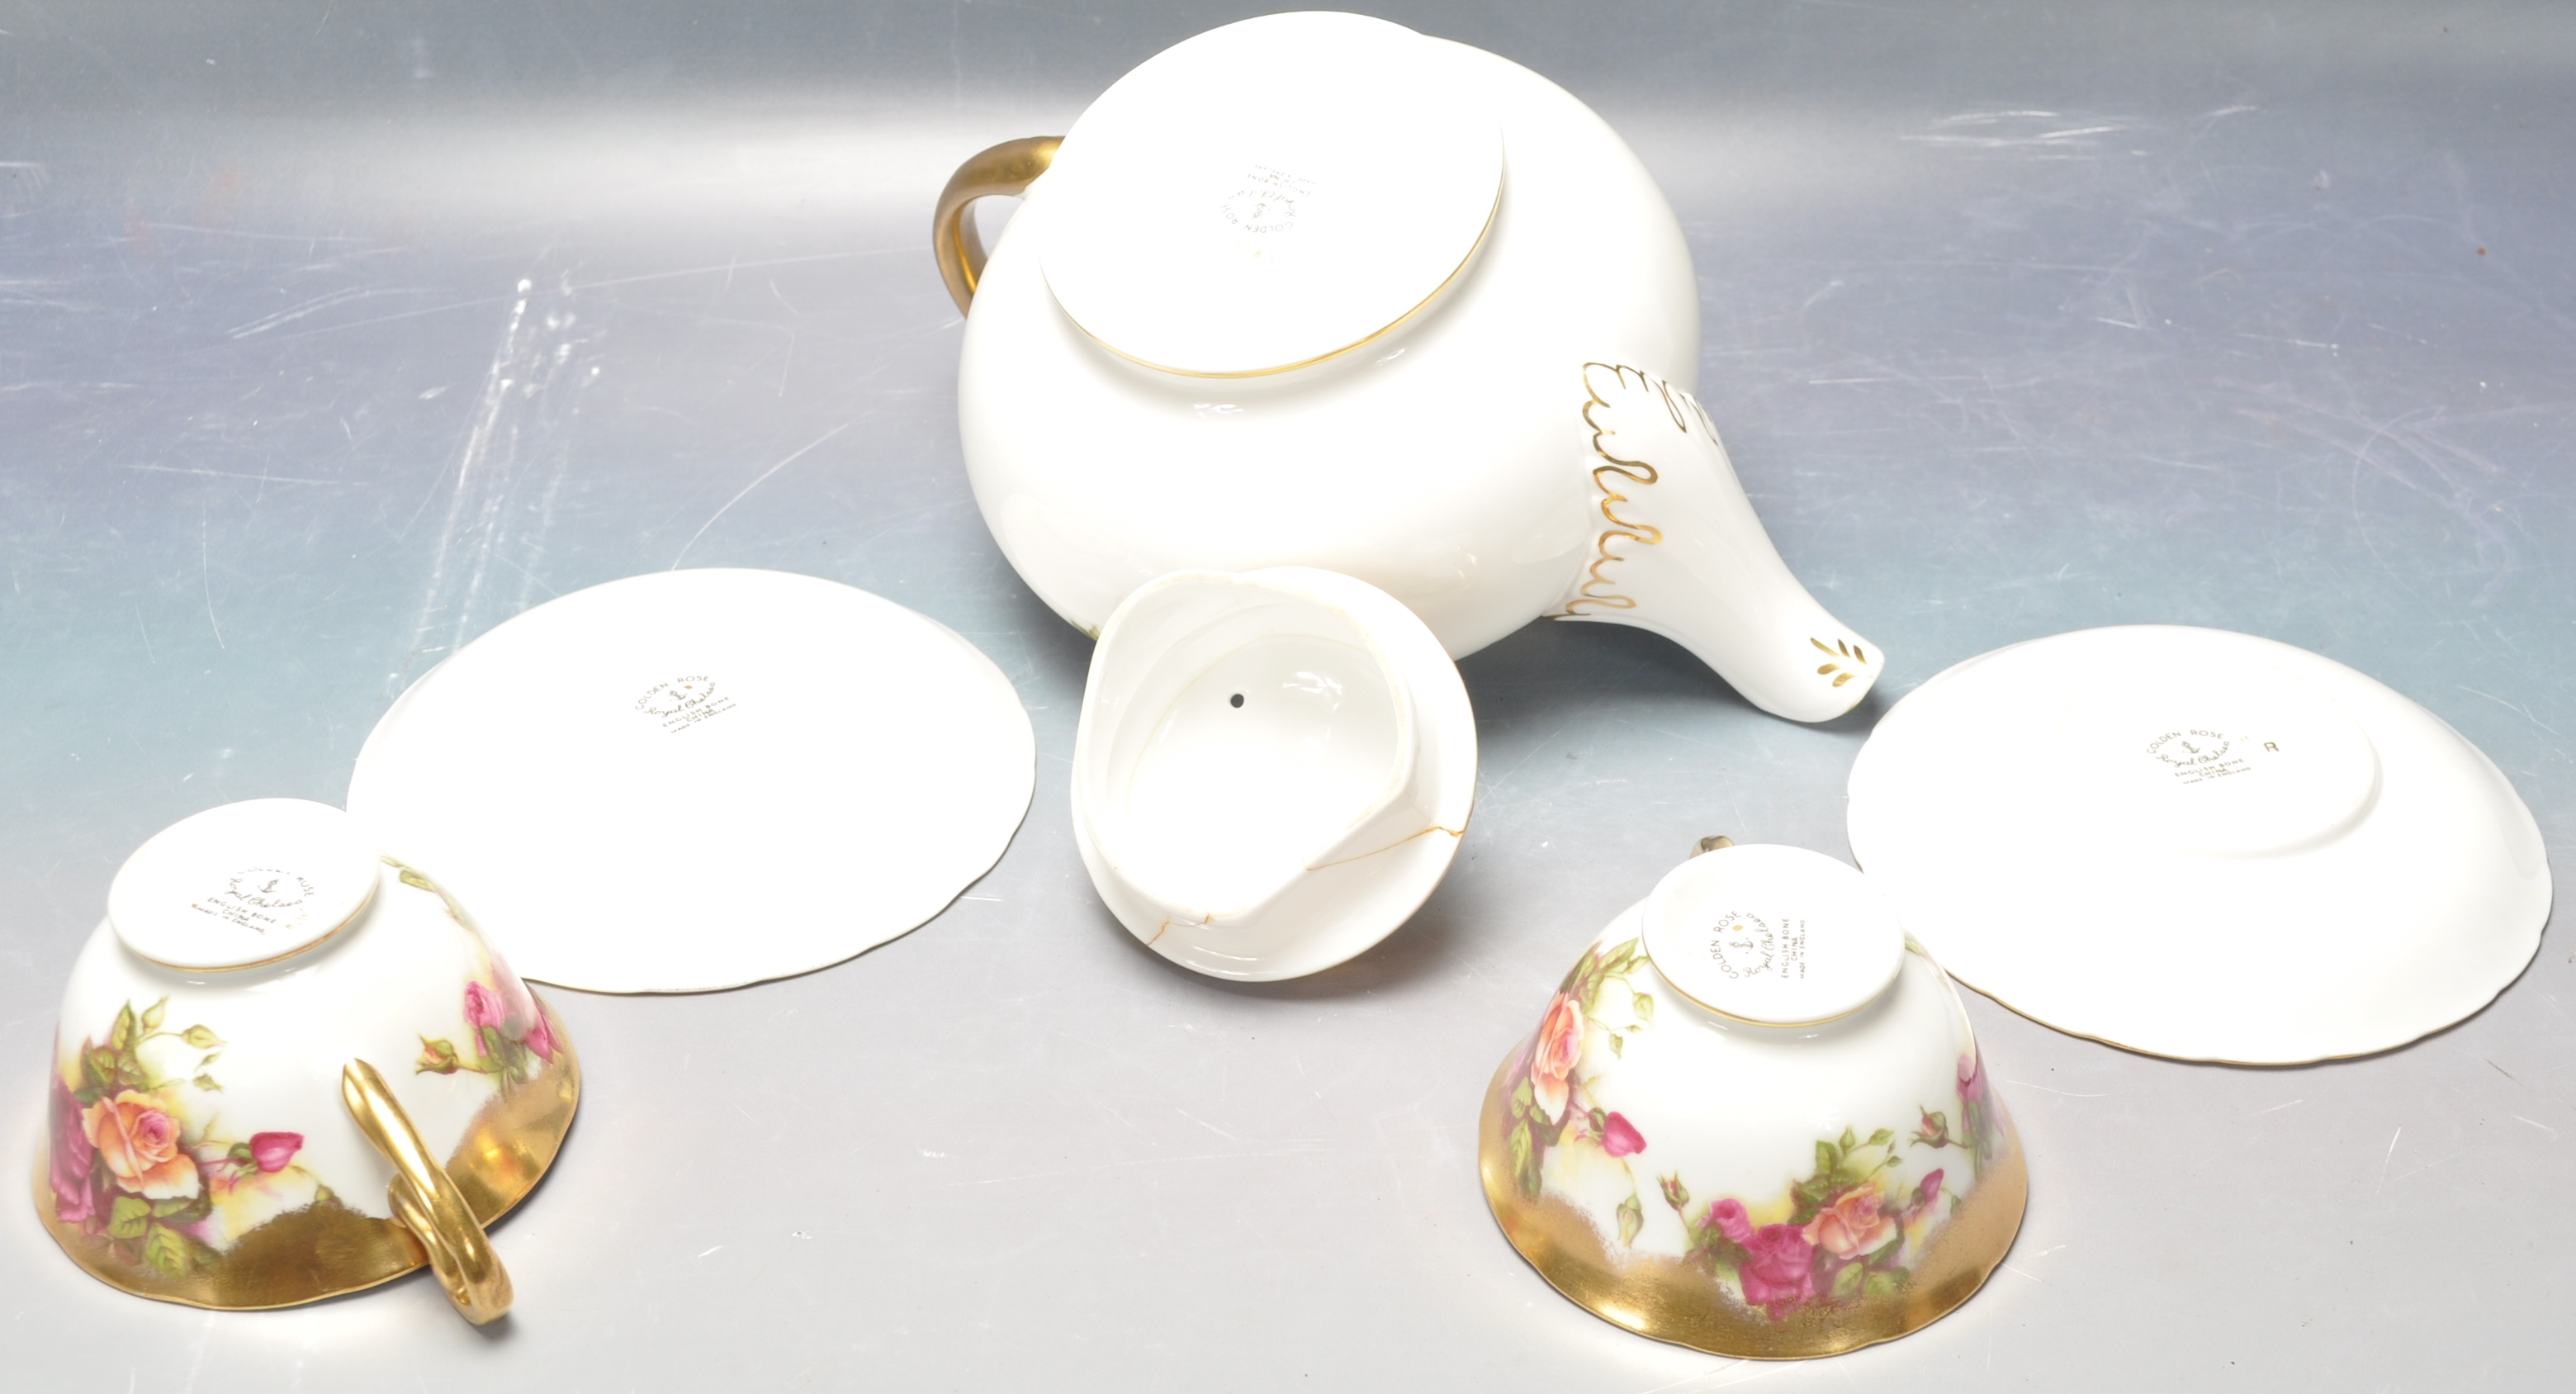 COLLECTION OF 20TH CENTURY ROYAL CHELSEA ENGLISH ROSE CHINA - Image 5 of 7